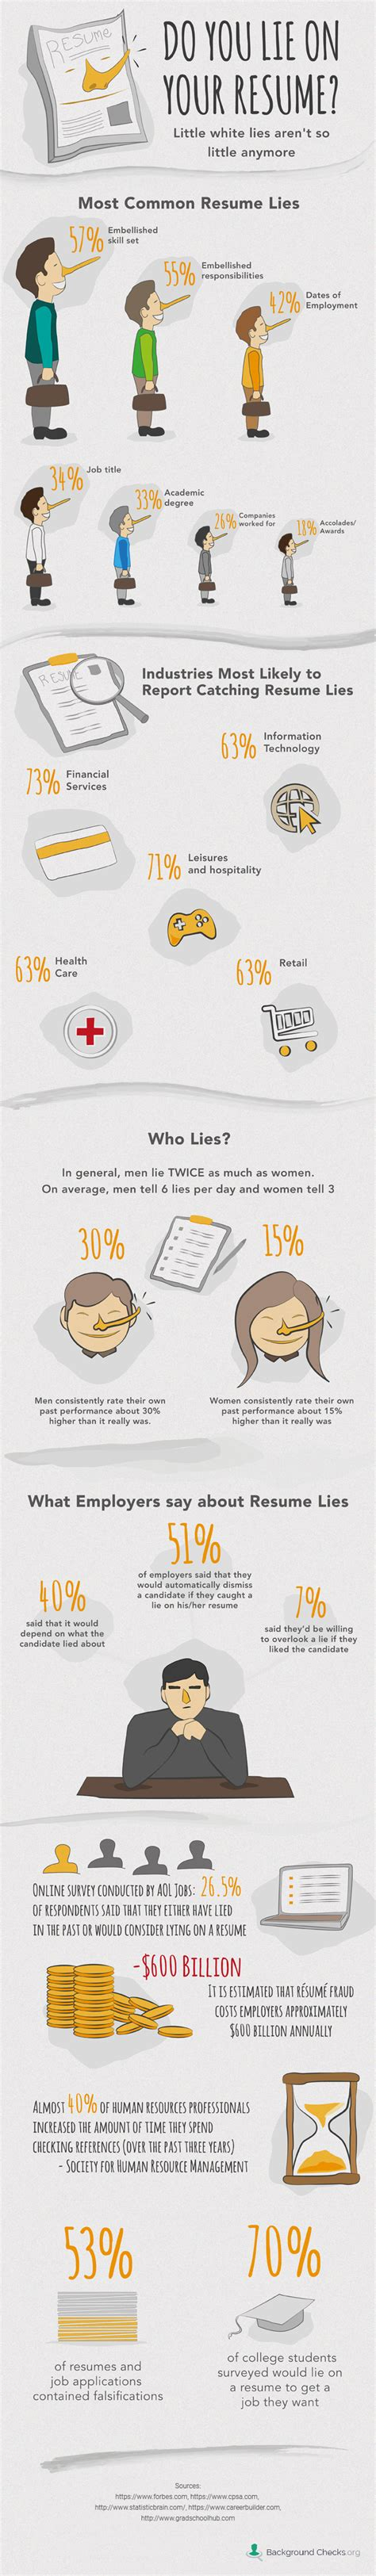 infographic the lies we tell on resumes backgroundchecks org